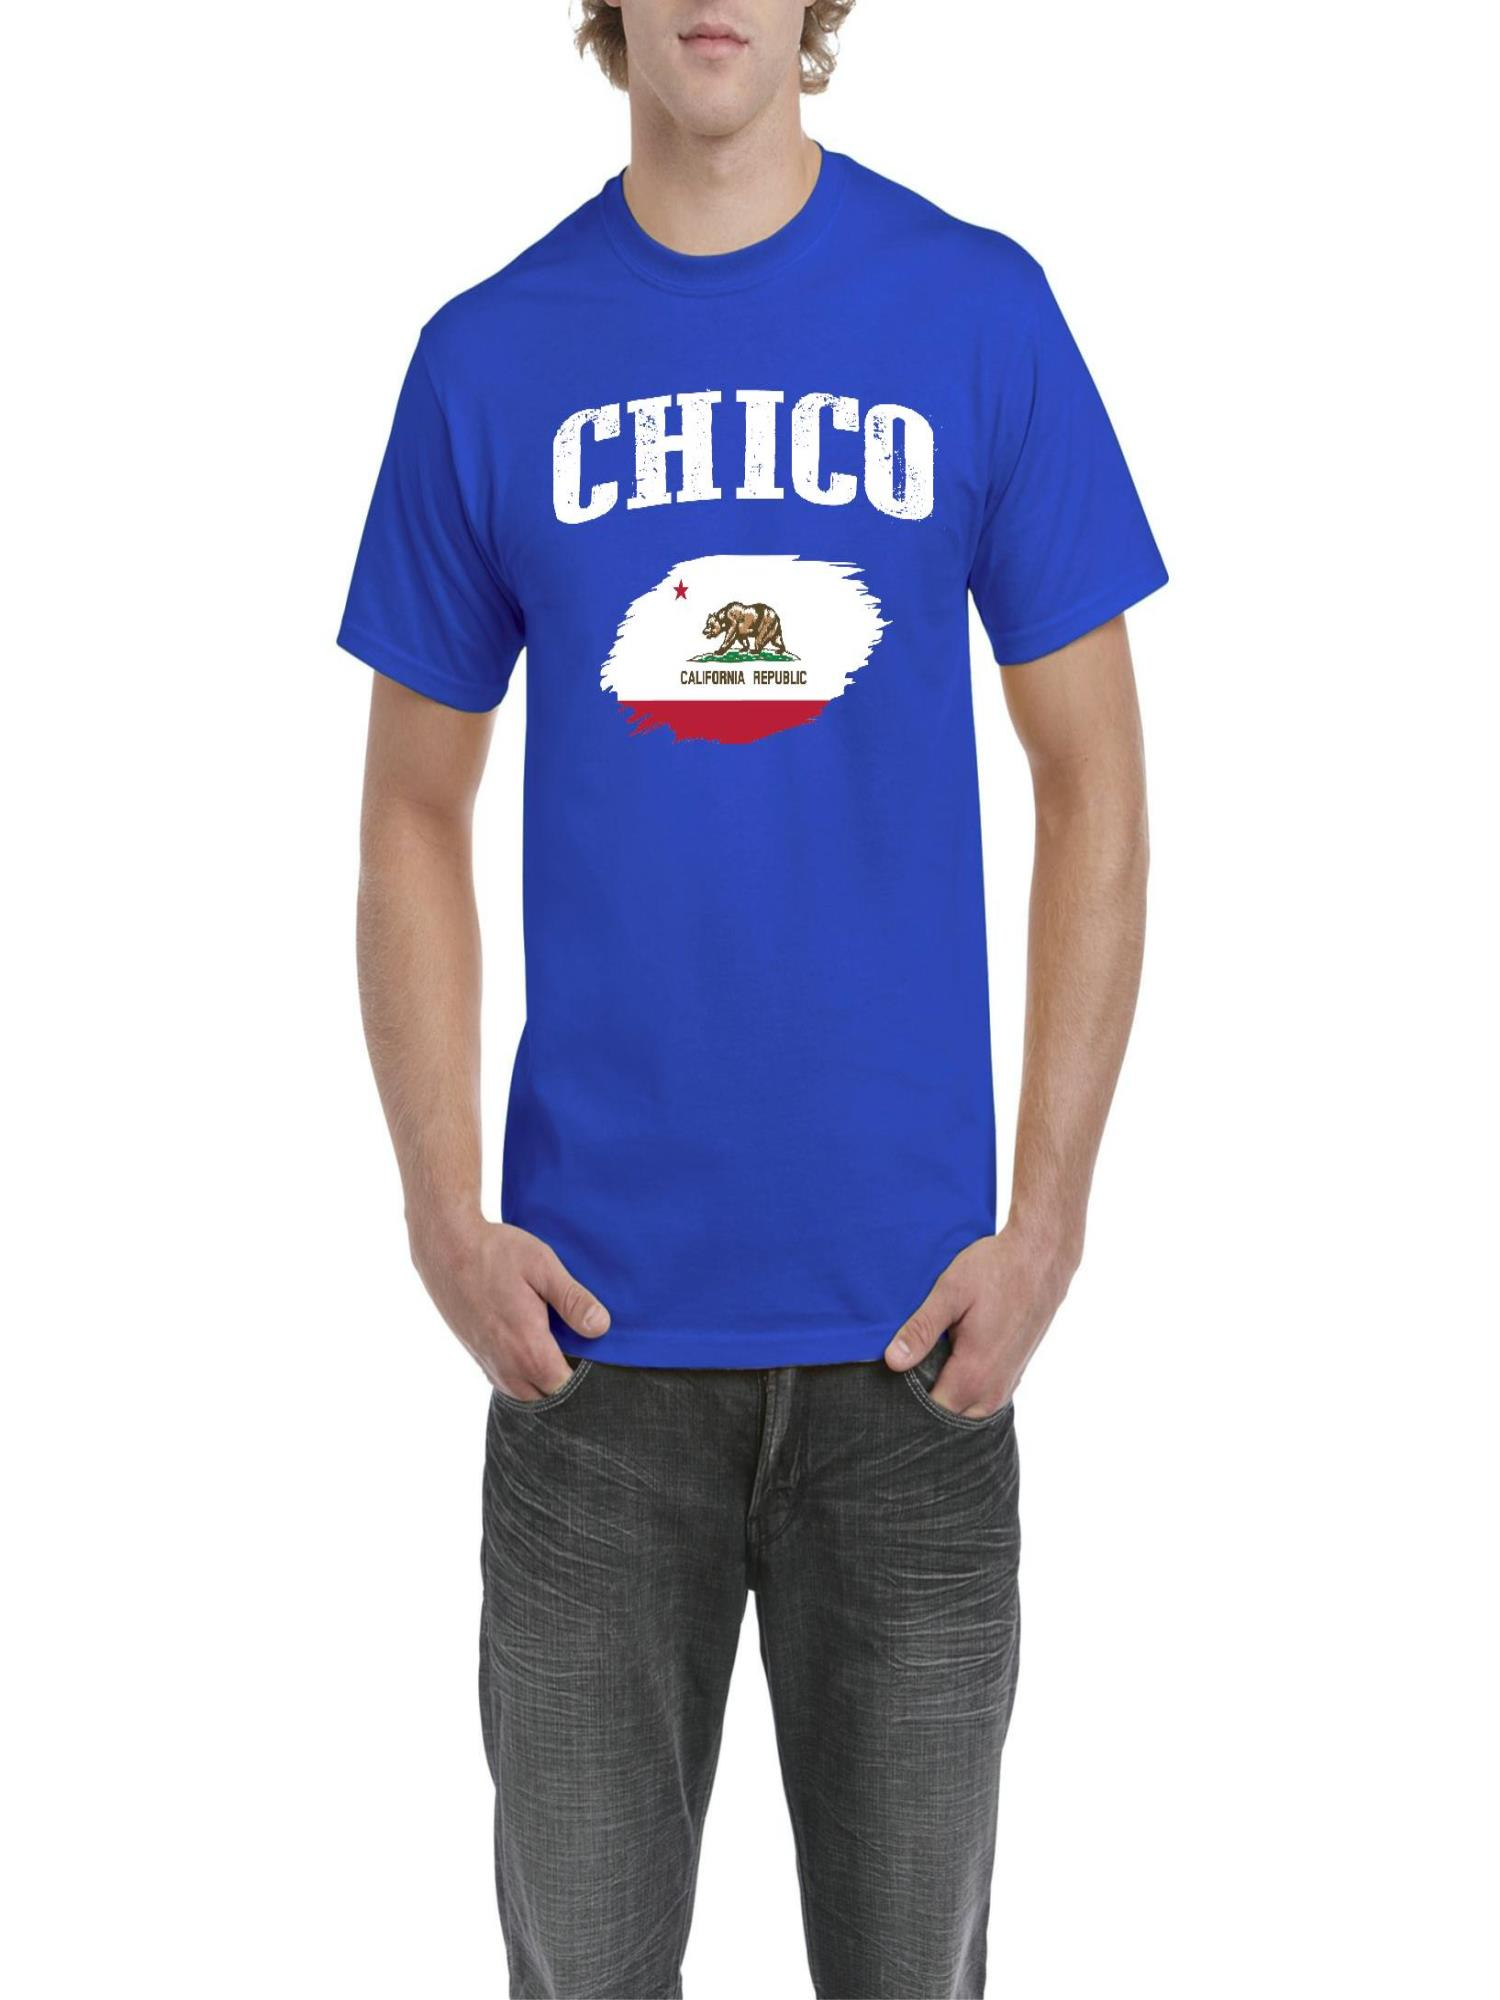 Chico California Men Shirts T Shirt Tee Walmart